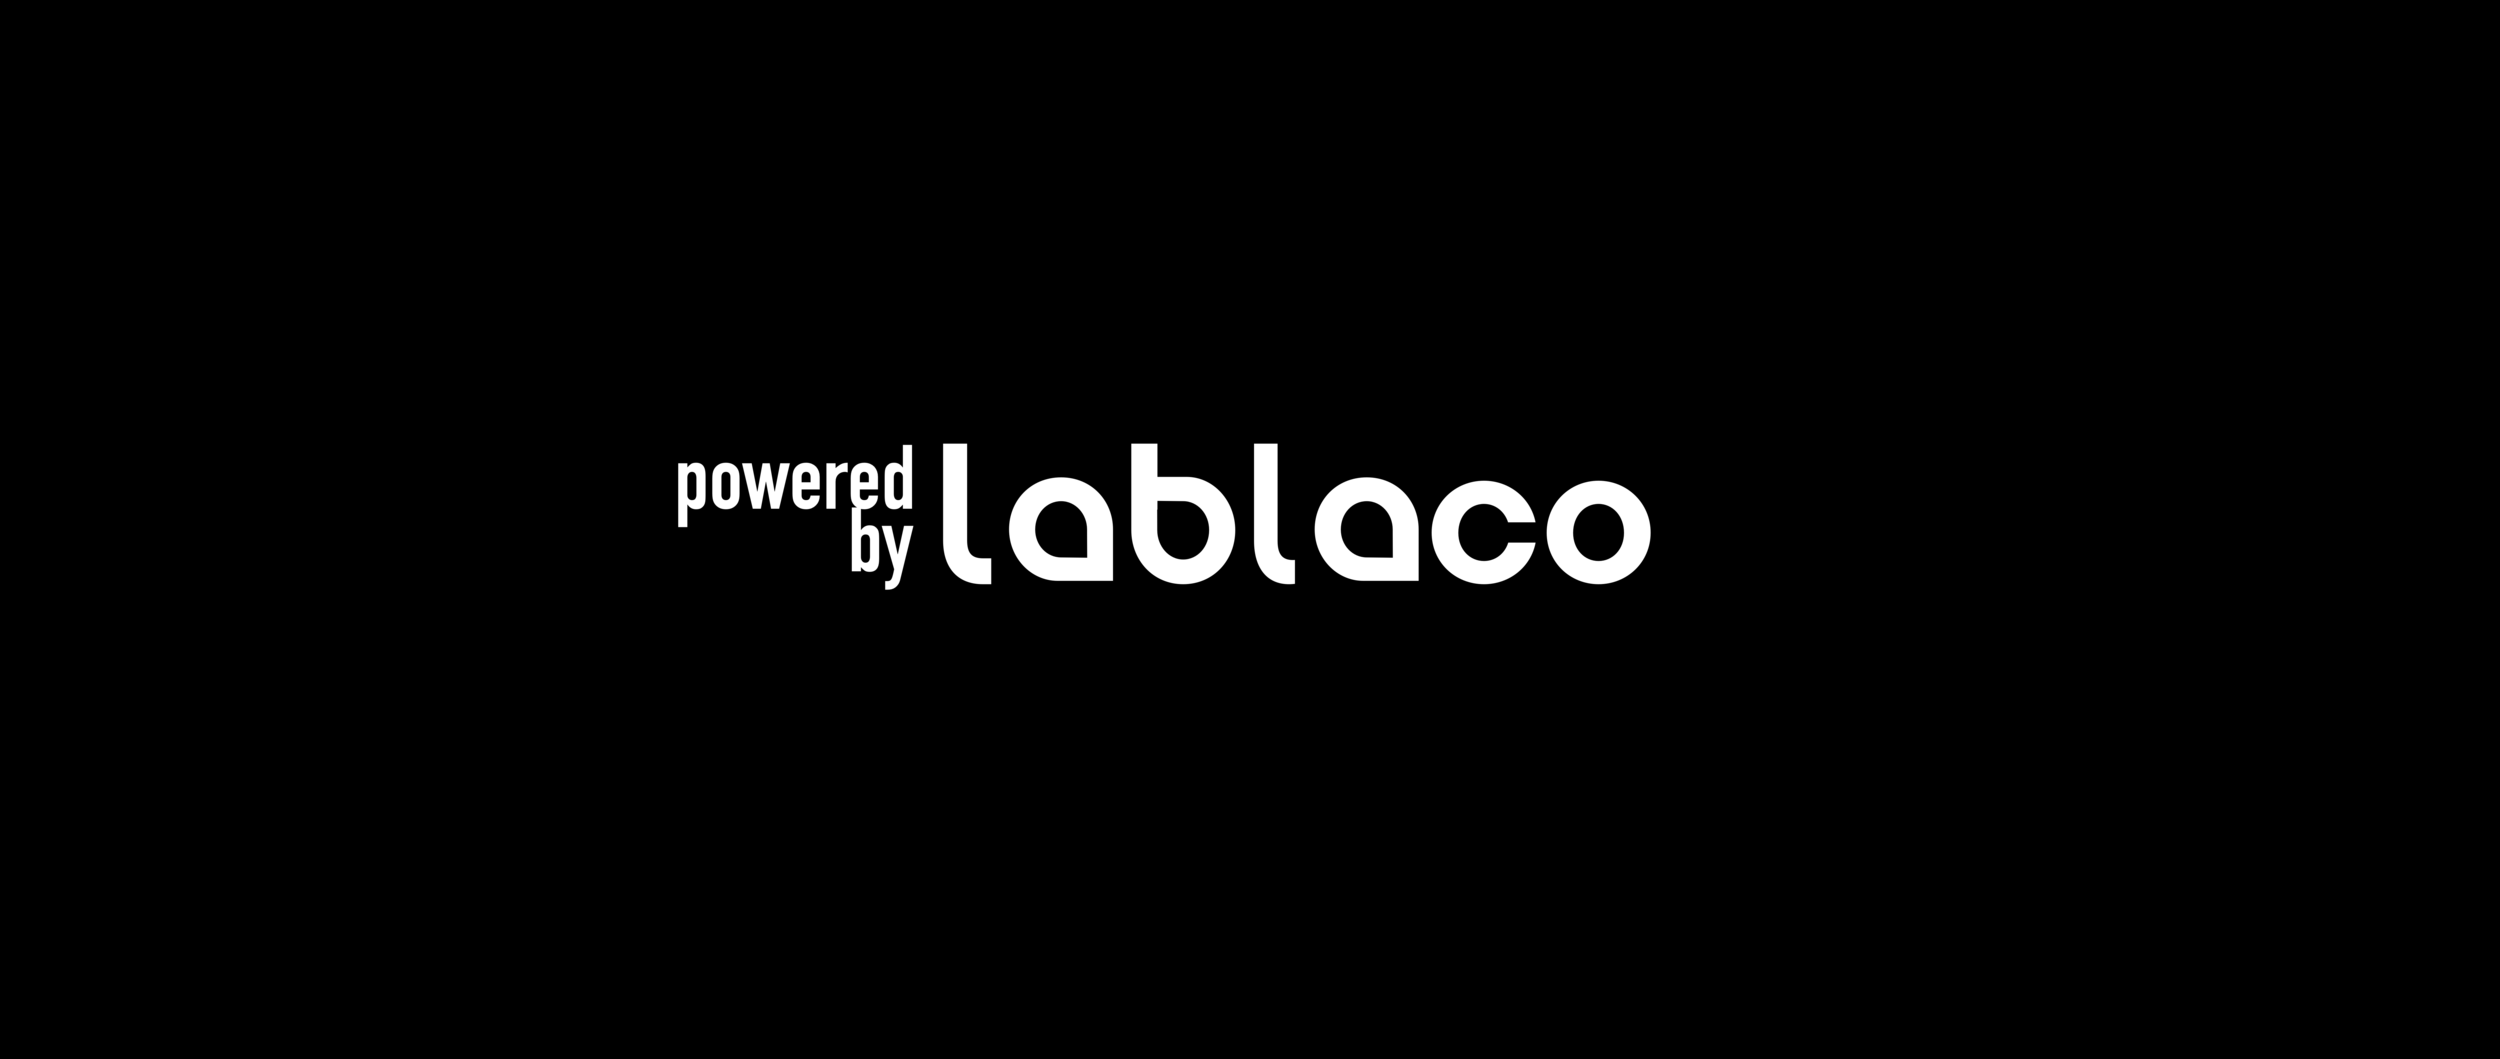 POWERED BY LABLACO.png